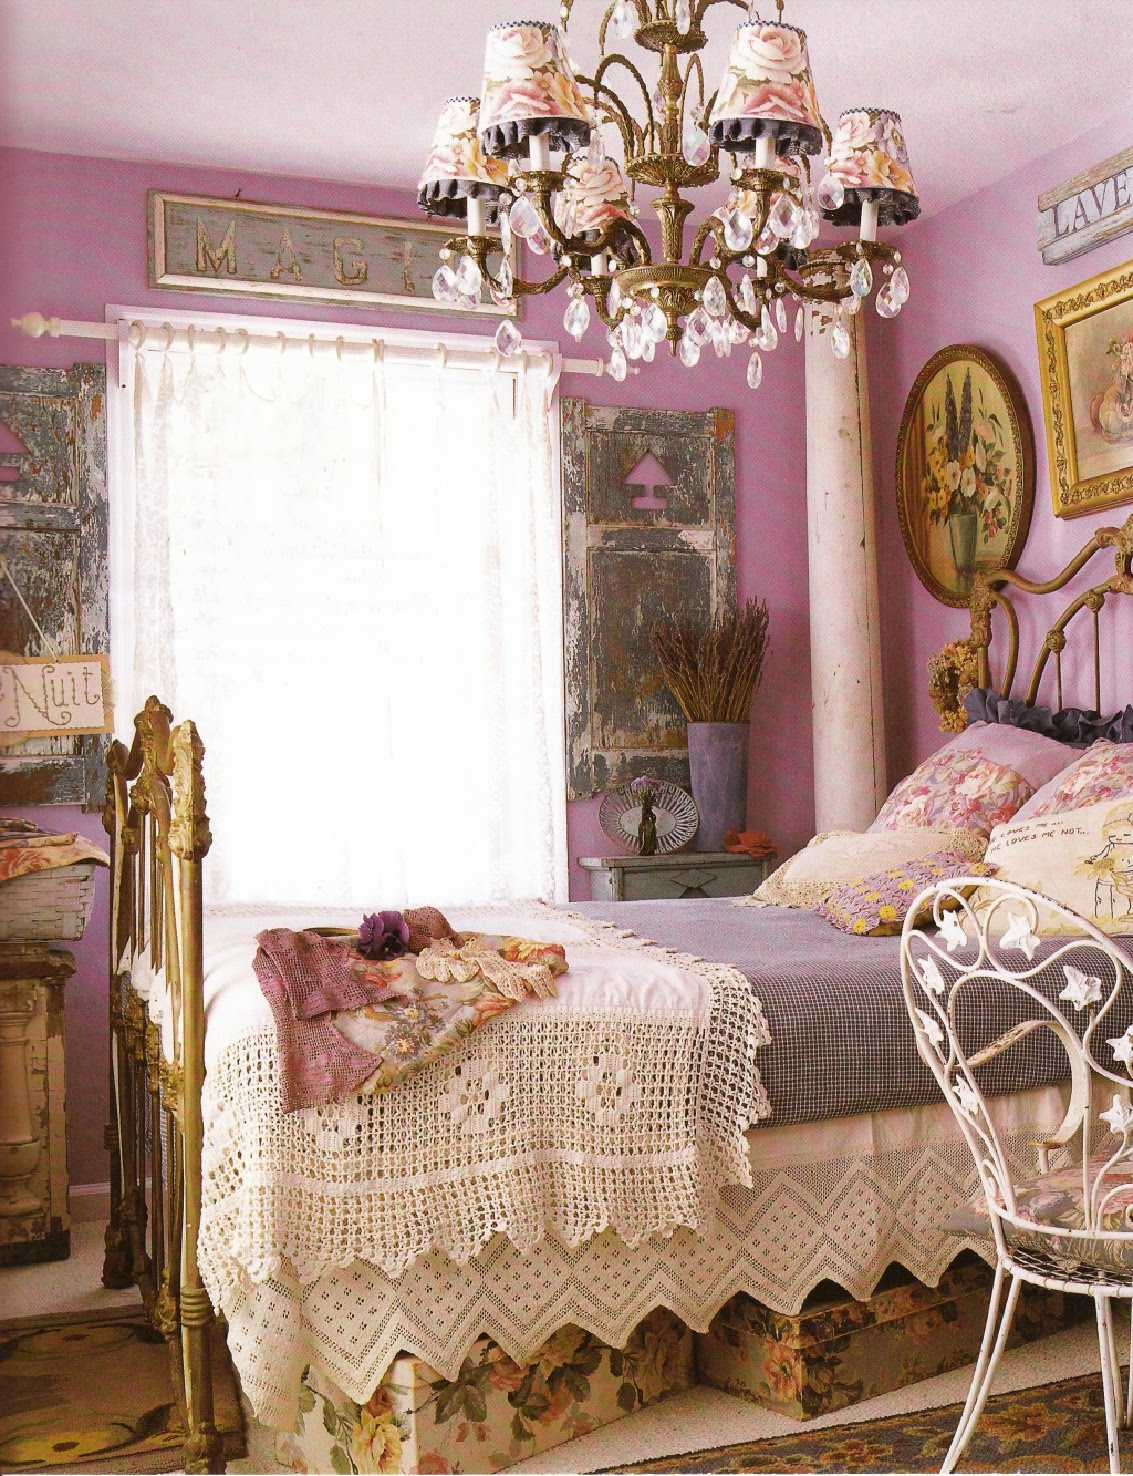 via rock candy blog vintage shabby chic furniture and home decor. Black Bedroom Furniture Sets. Home Design Ideas